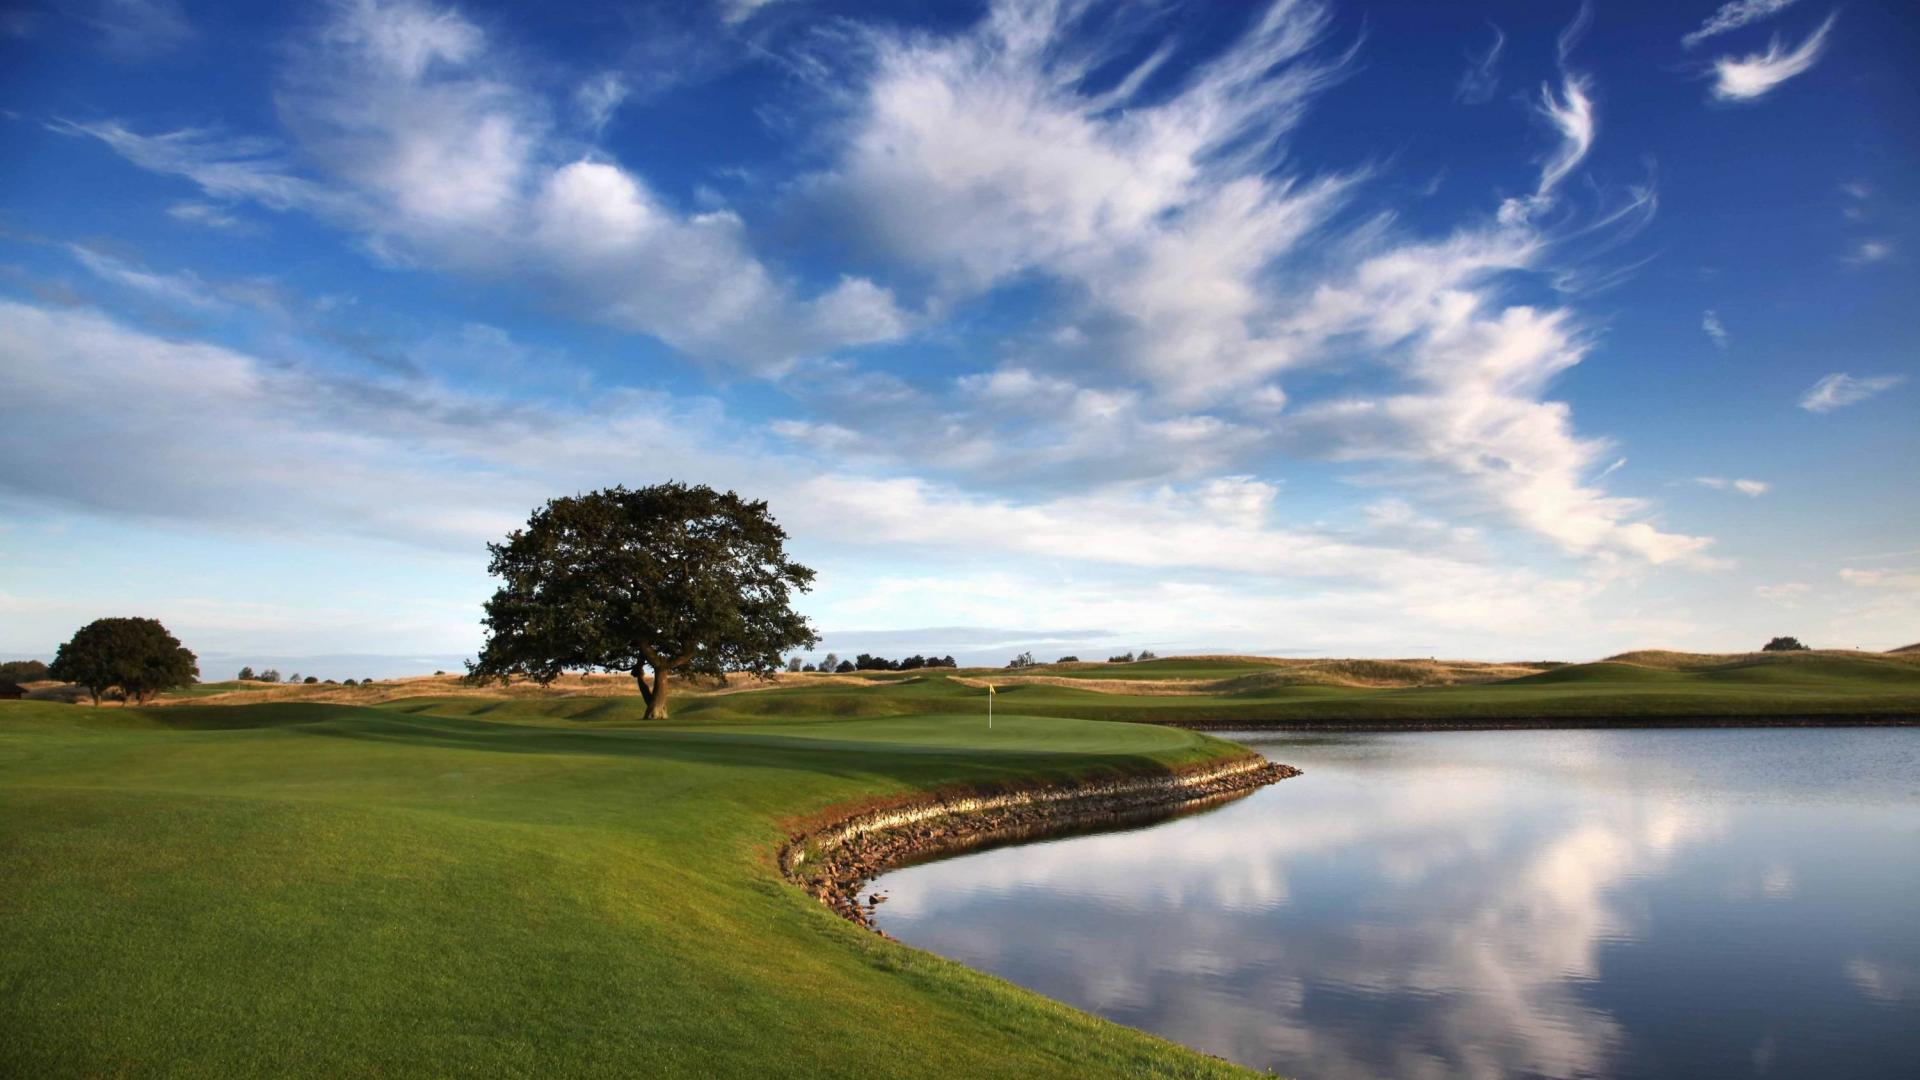 golf course sky wallpaper for android 12310 wallpaper wallpaper download